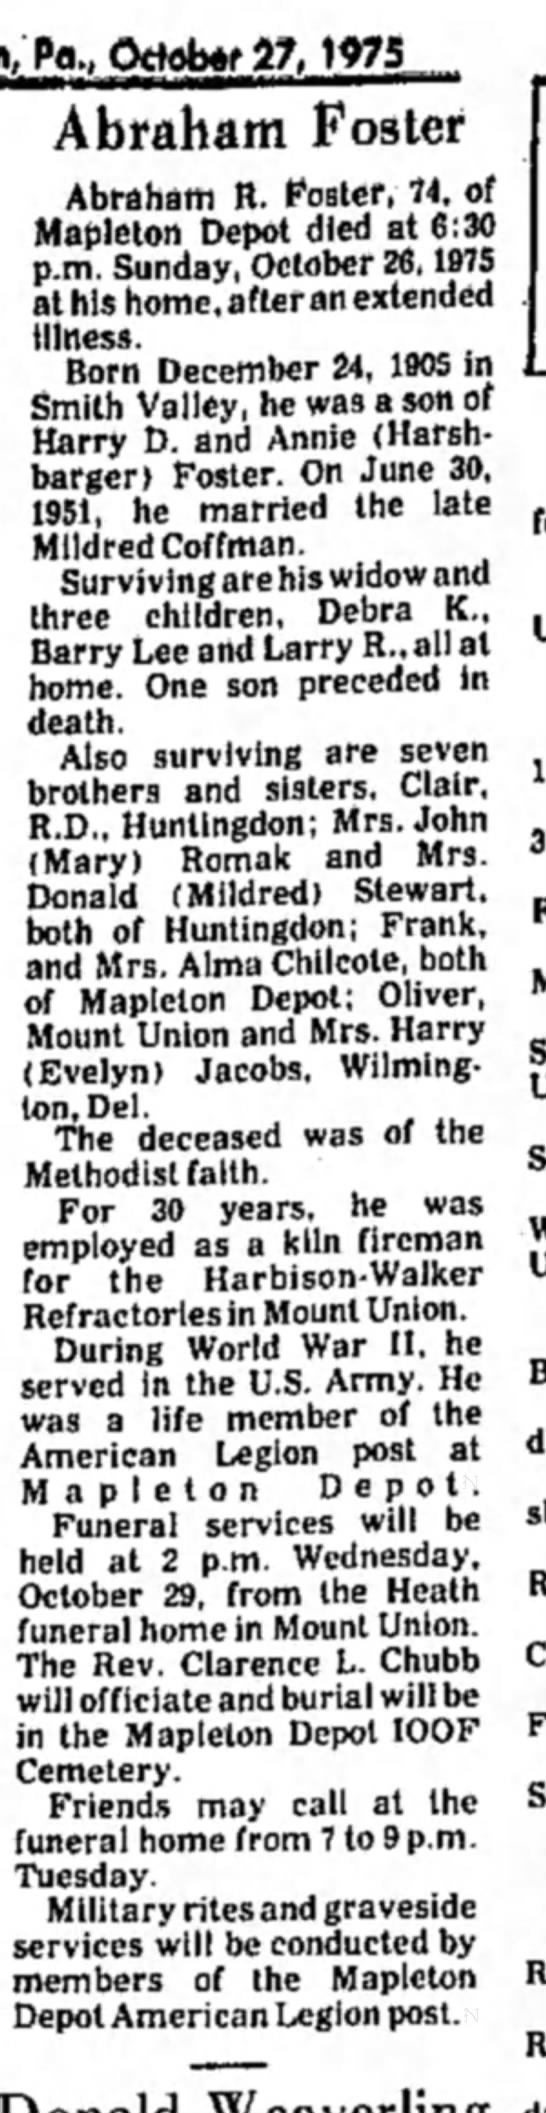 Abraham Foster obit-TDN-p.2-27 Oct 1975 - Pa., October 27, WtS Abraham Foster Abraham R....